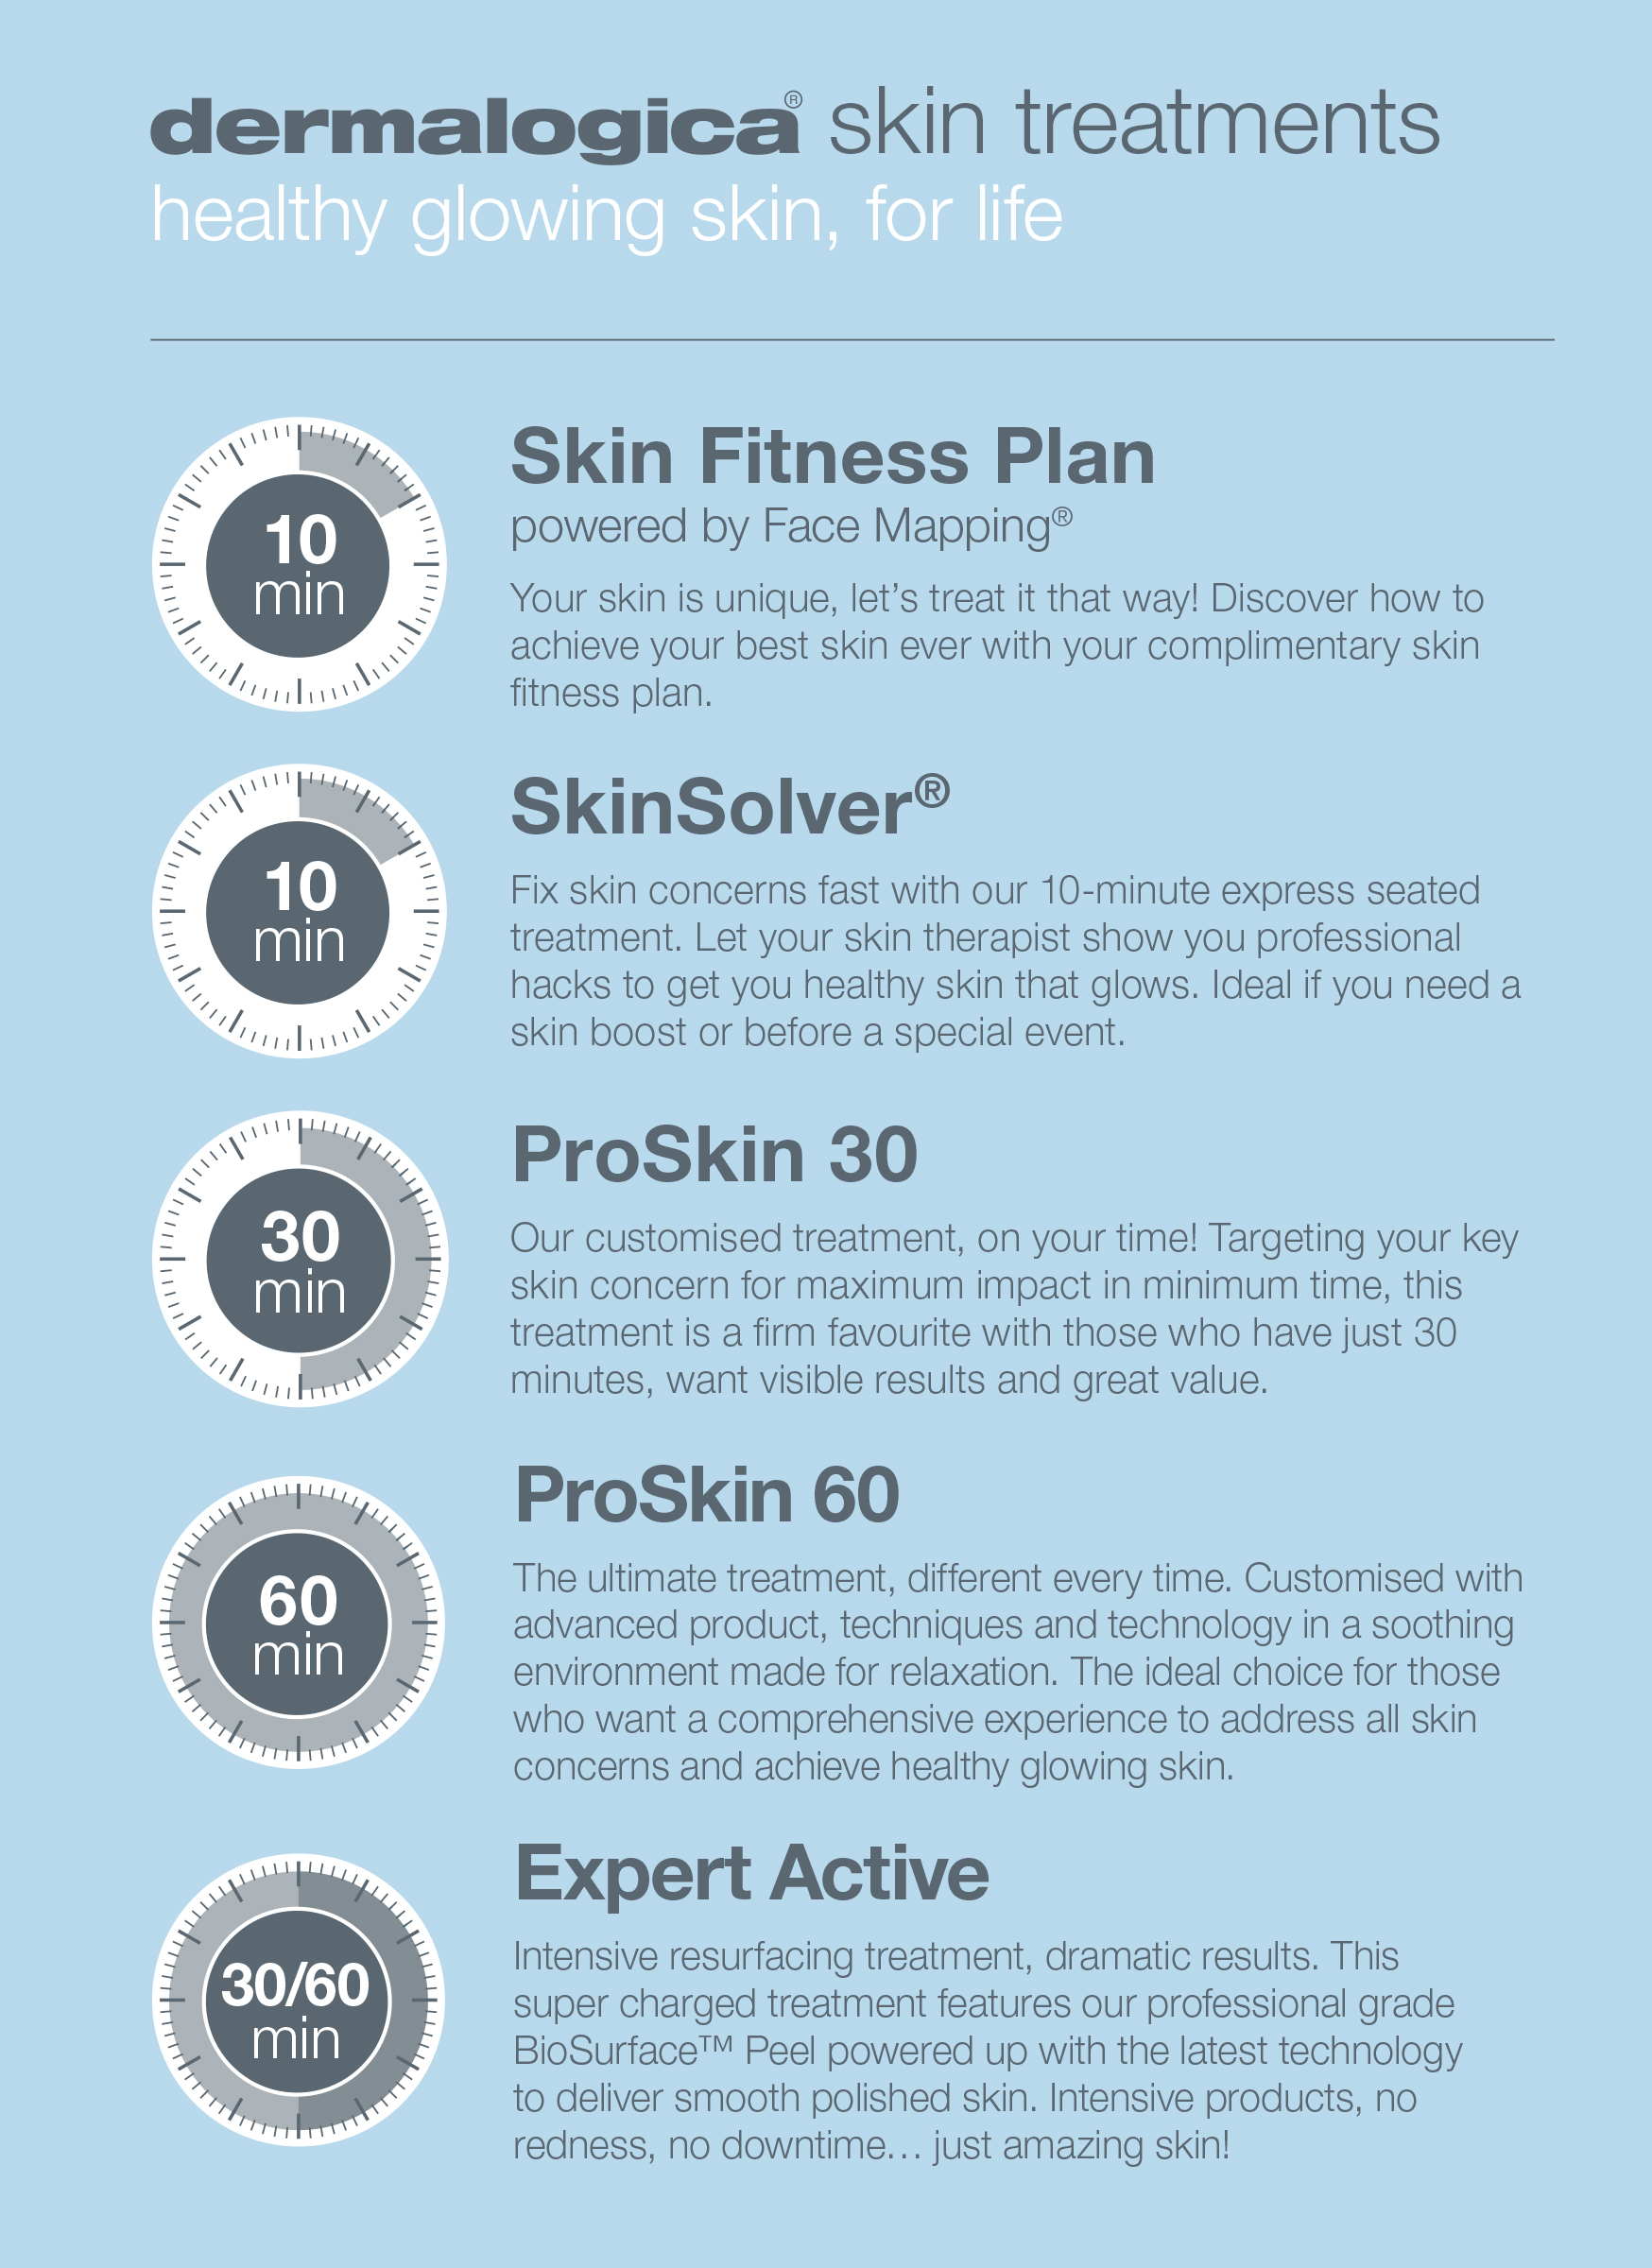 Dermalogica s | Professional Skin Care at Belle Beauty Portsmouth. on